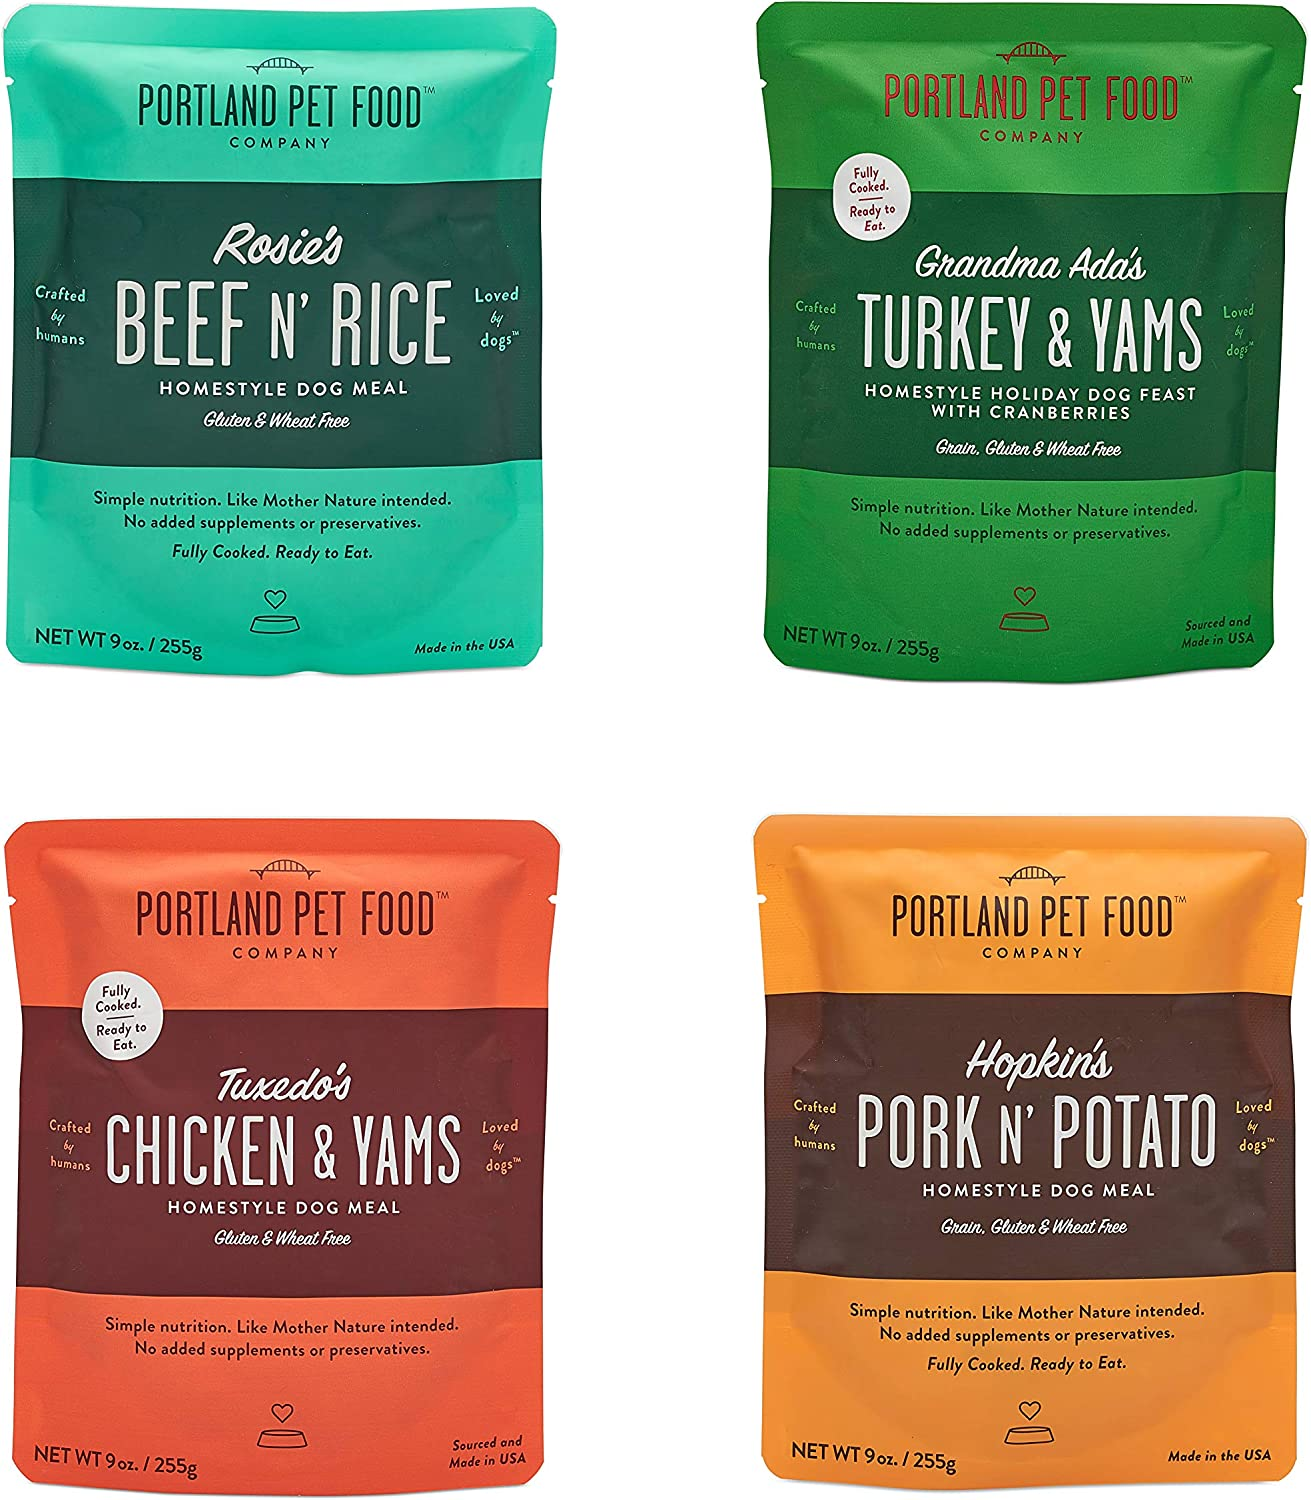 Crafted by Humans Loved by Dogs Portland Pet Food Company – All Natural Wet Dog Meal Pouches, Fully Cooked and Ready-to-Eat, Human-Grade, Gluten and Wheat Free, USA-Made, 4 Pack (4 x 9oz)